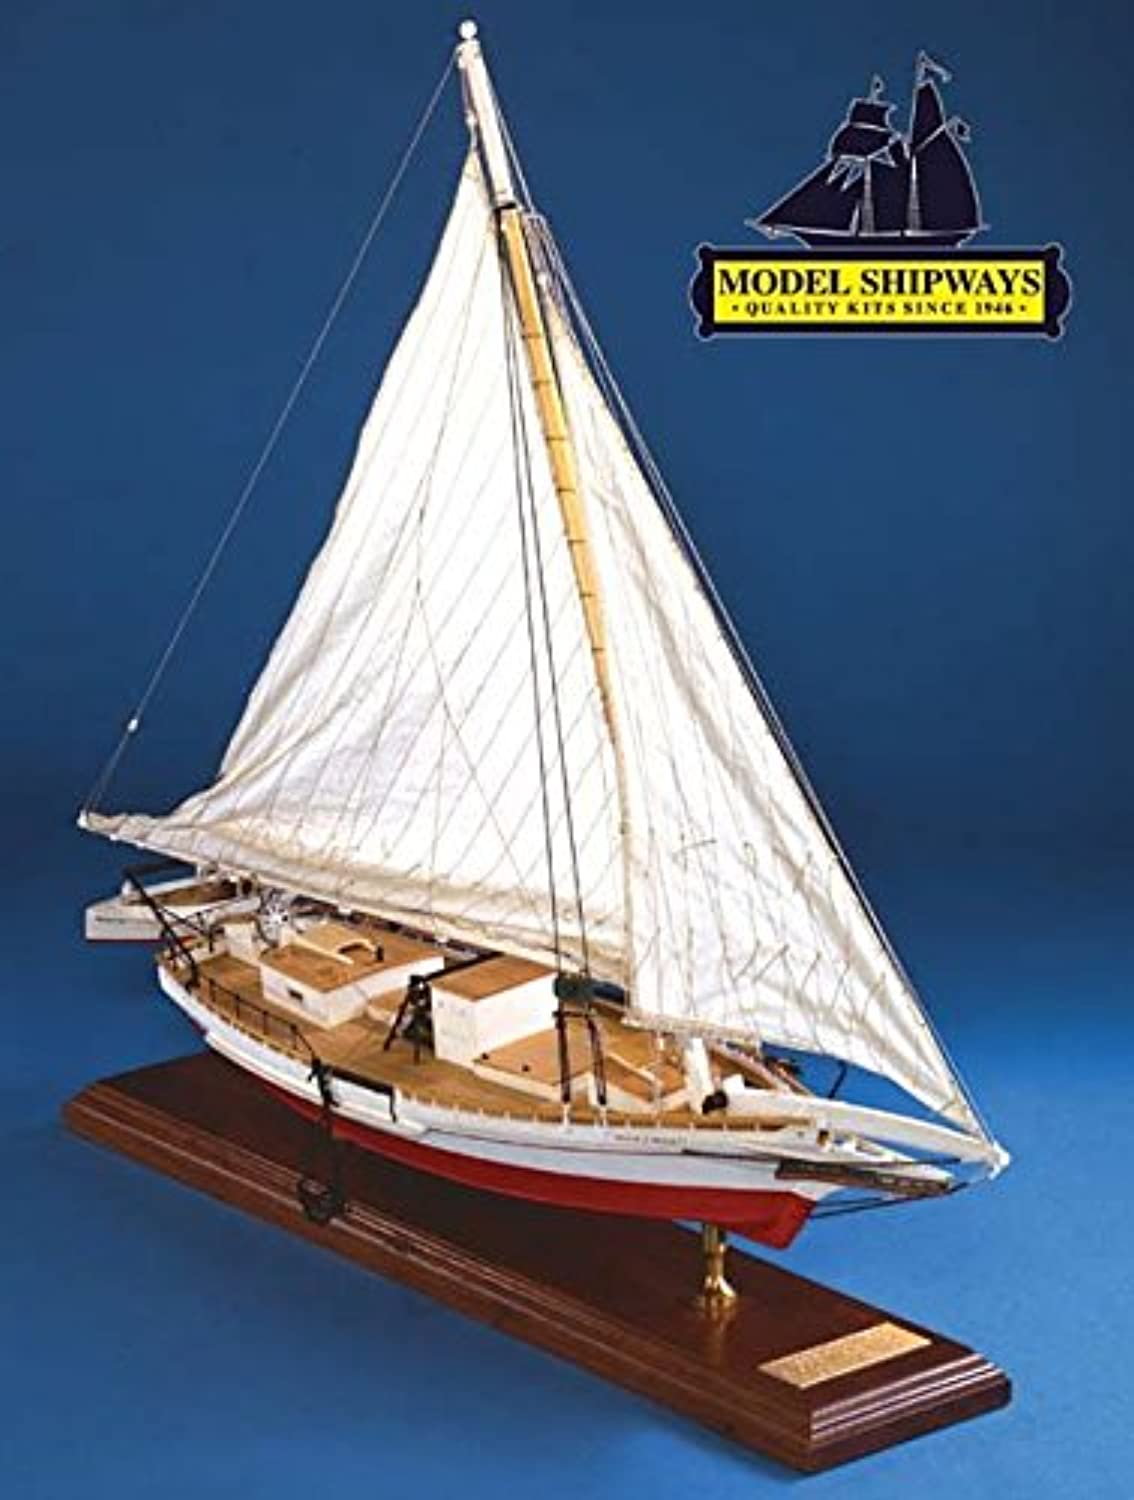 ventas calientes MODEL EXPO Model Shipways Willie Bennett Bennett Bennett Skipjack Wood 1 32 Scale Lenght 61cm Height  41 cm MS2032 Model Kit  ahorra hasta un 70%